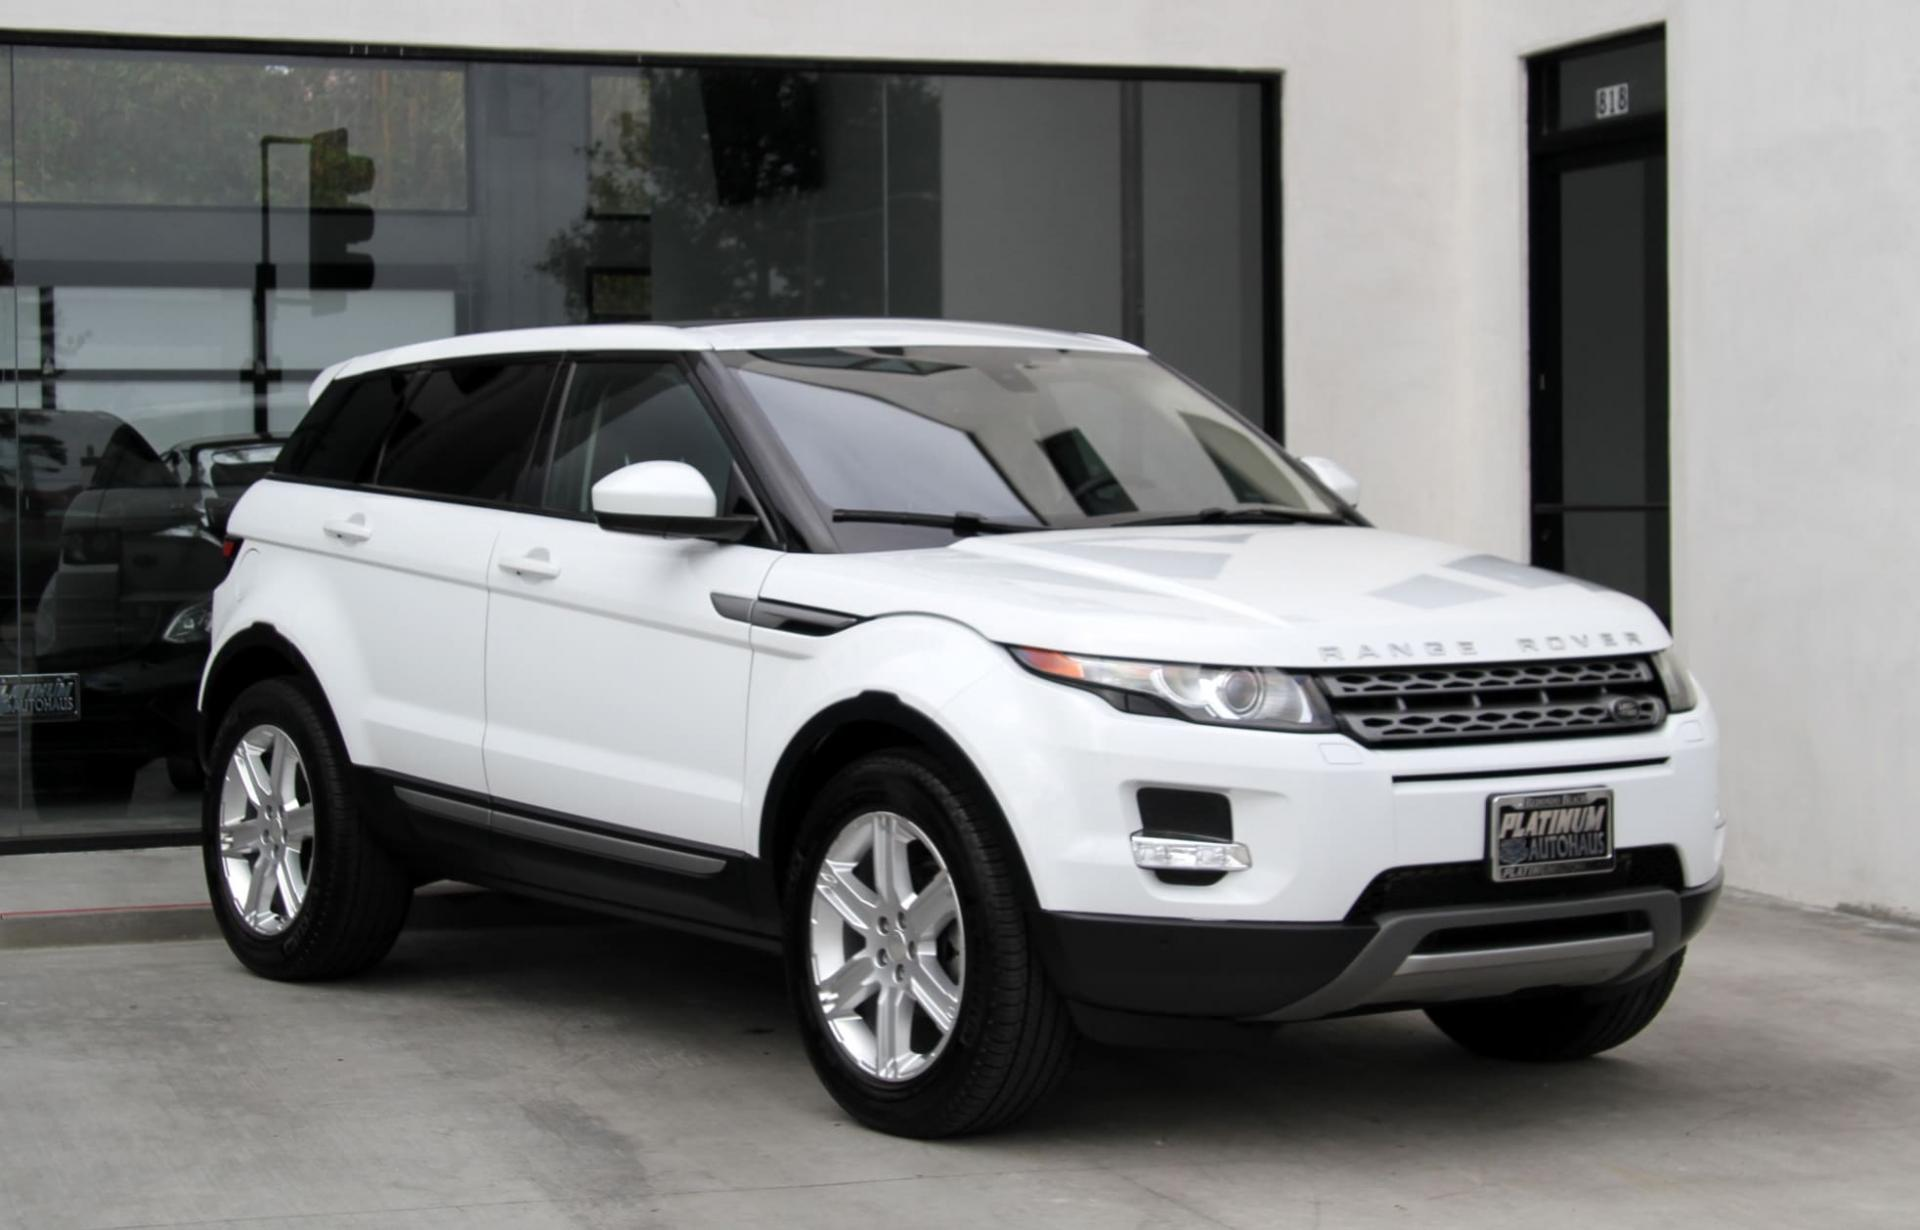 2014 Land Rover Range Rover Evoque Pure Plus Stock 6234